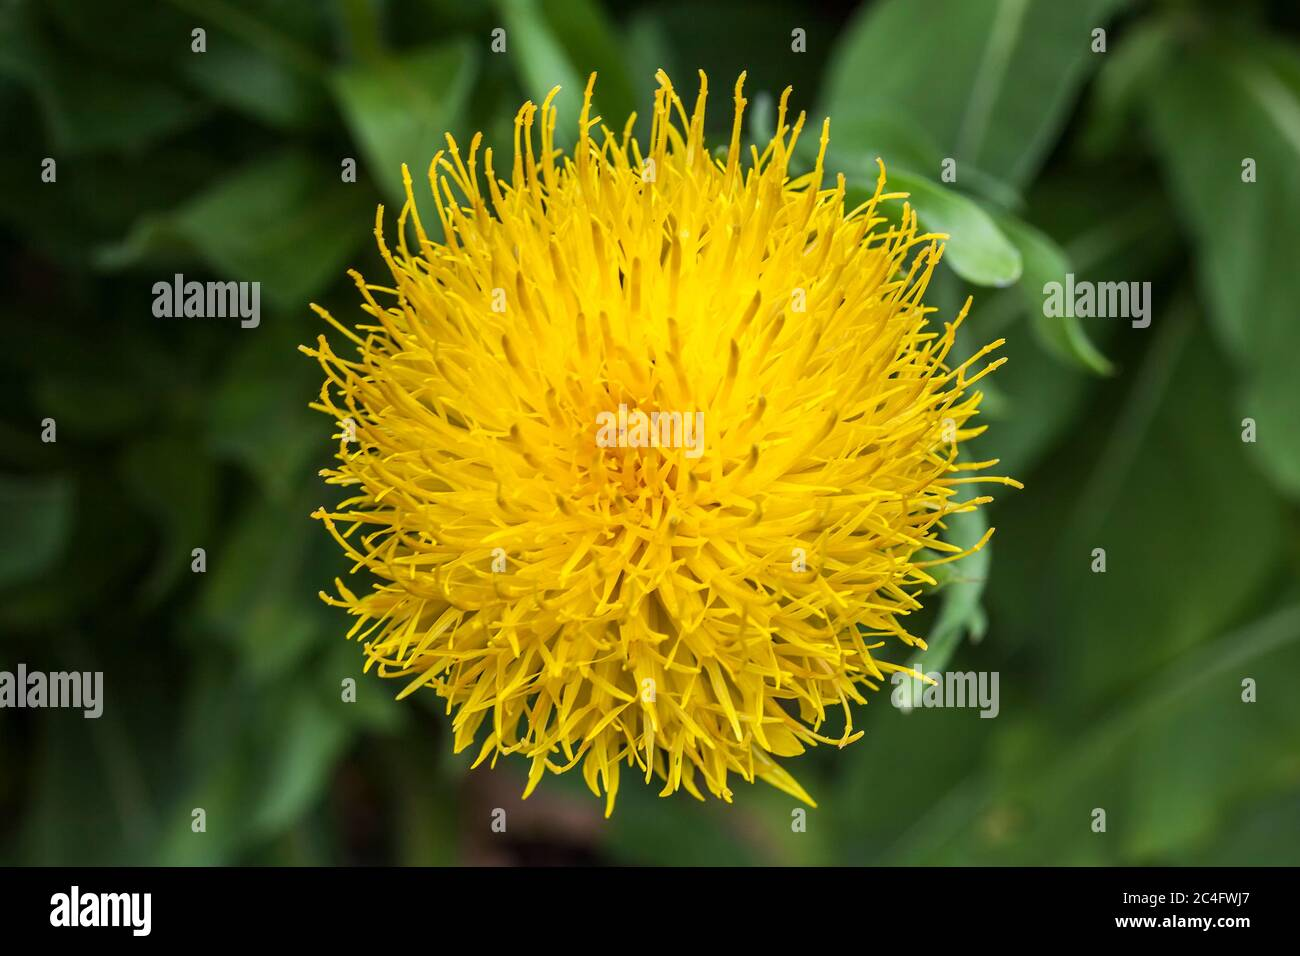 Thistle Like Flower High Resolution Stock Photography And Images Alamy